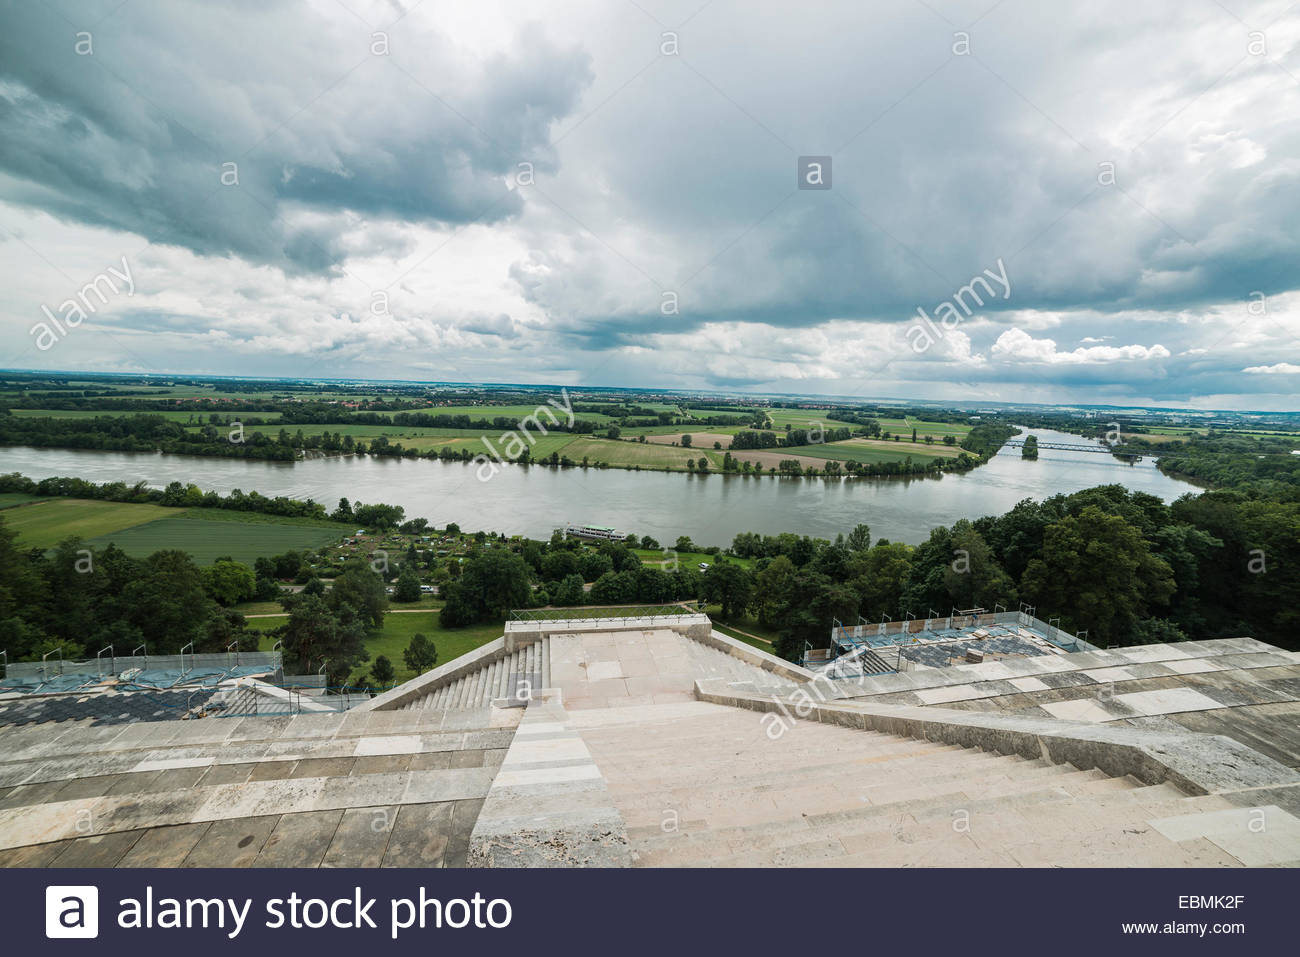 Weltenburg Abbey  Franconia and the German Danube, View from the Walhalla memorial or Valhalla temple across the ...